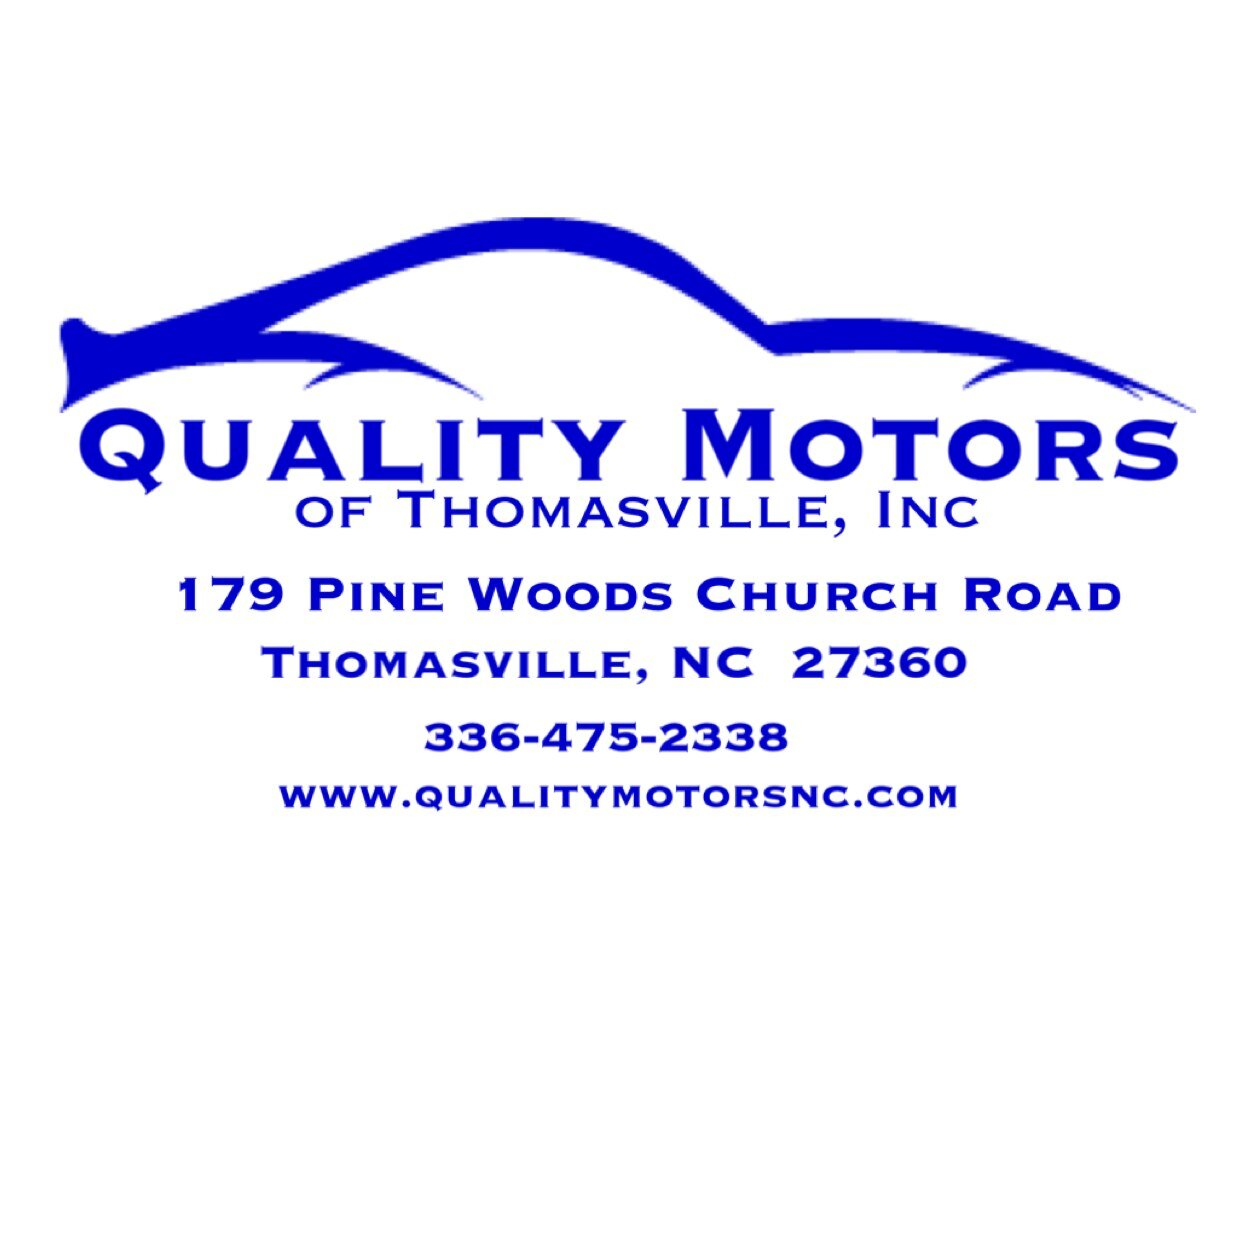 Quality motors qualitymotorsnc twitter for Modern motors thomasville nc